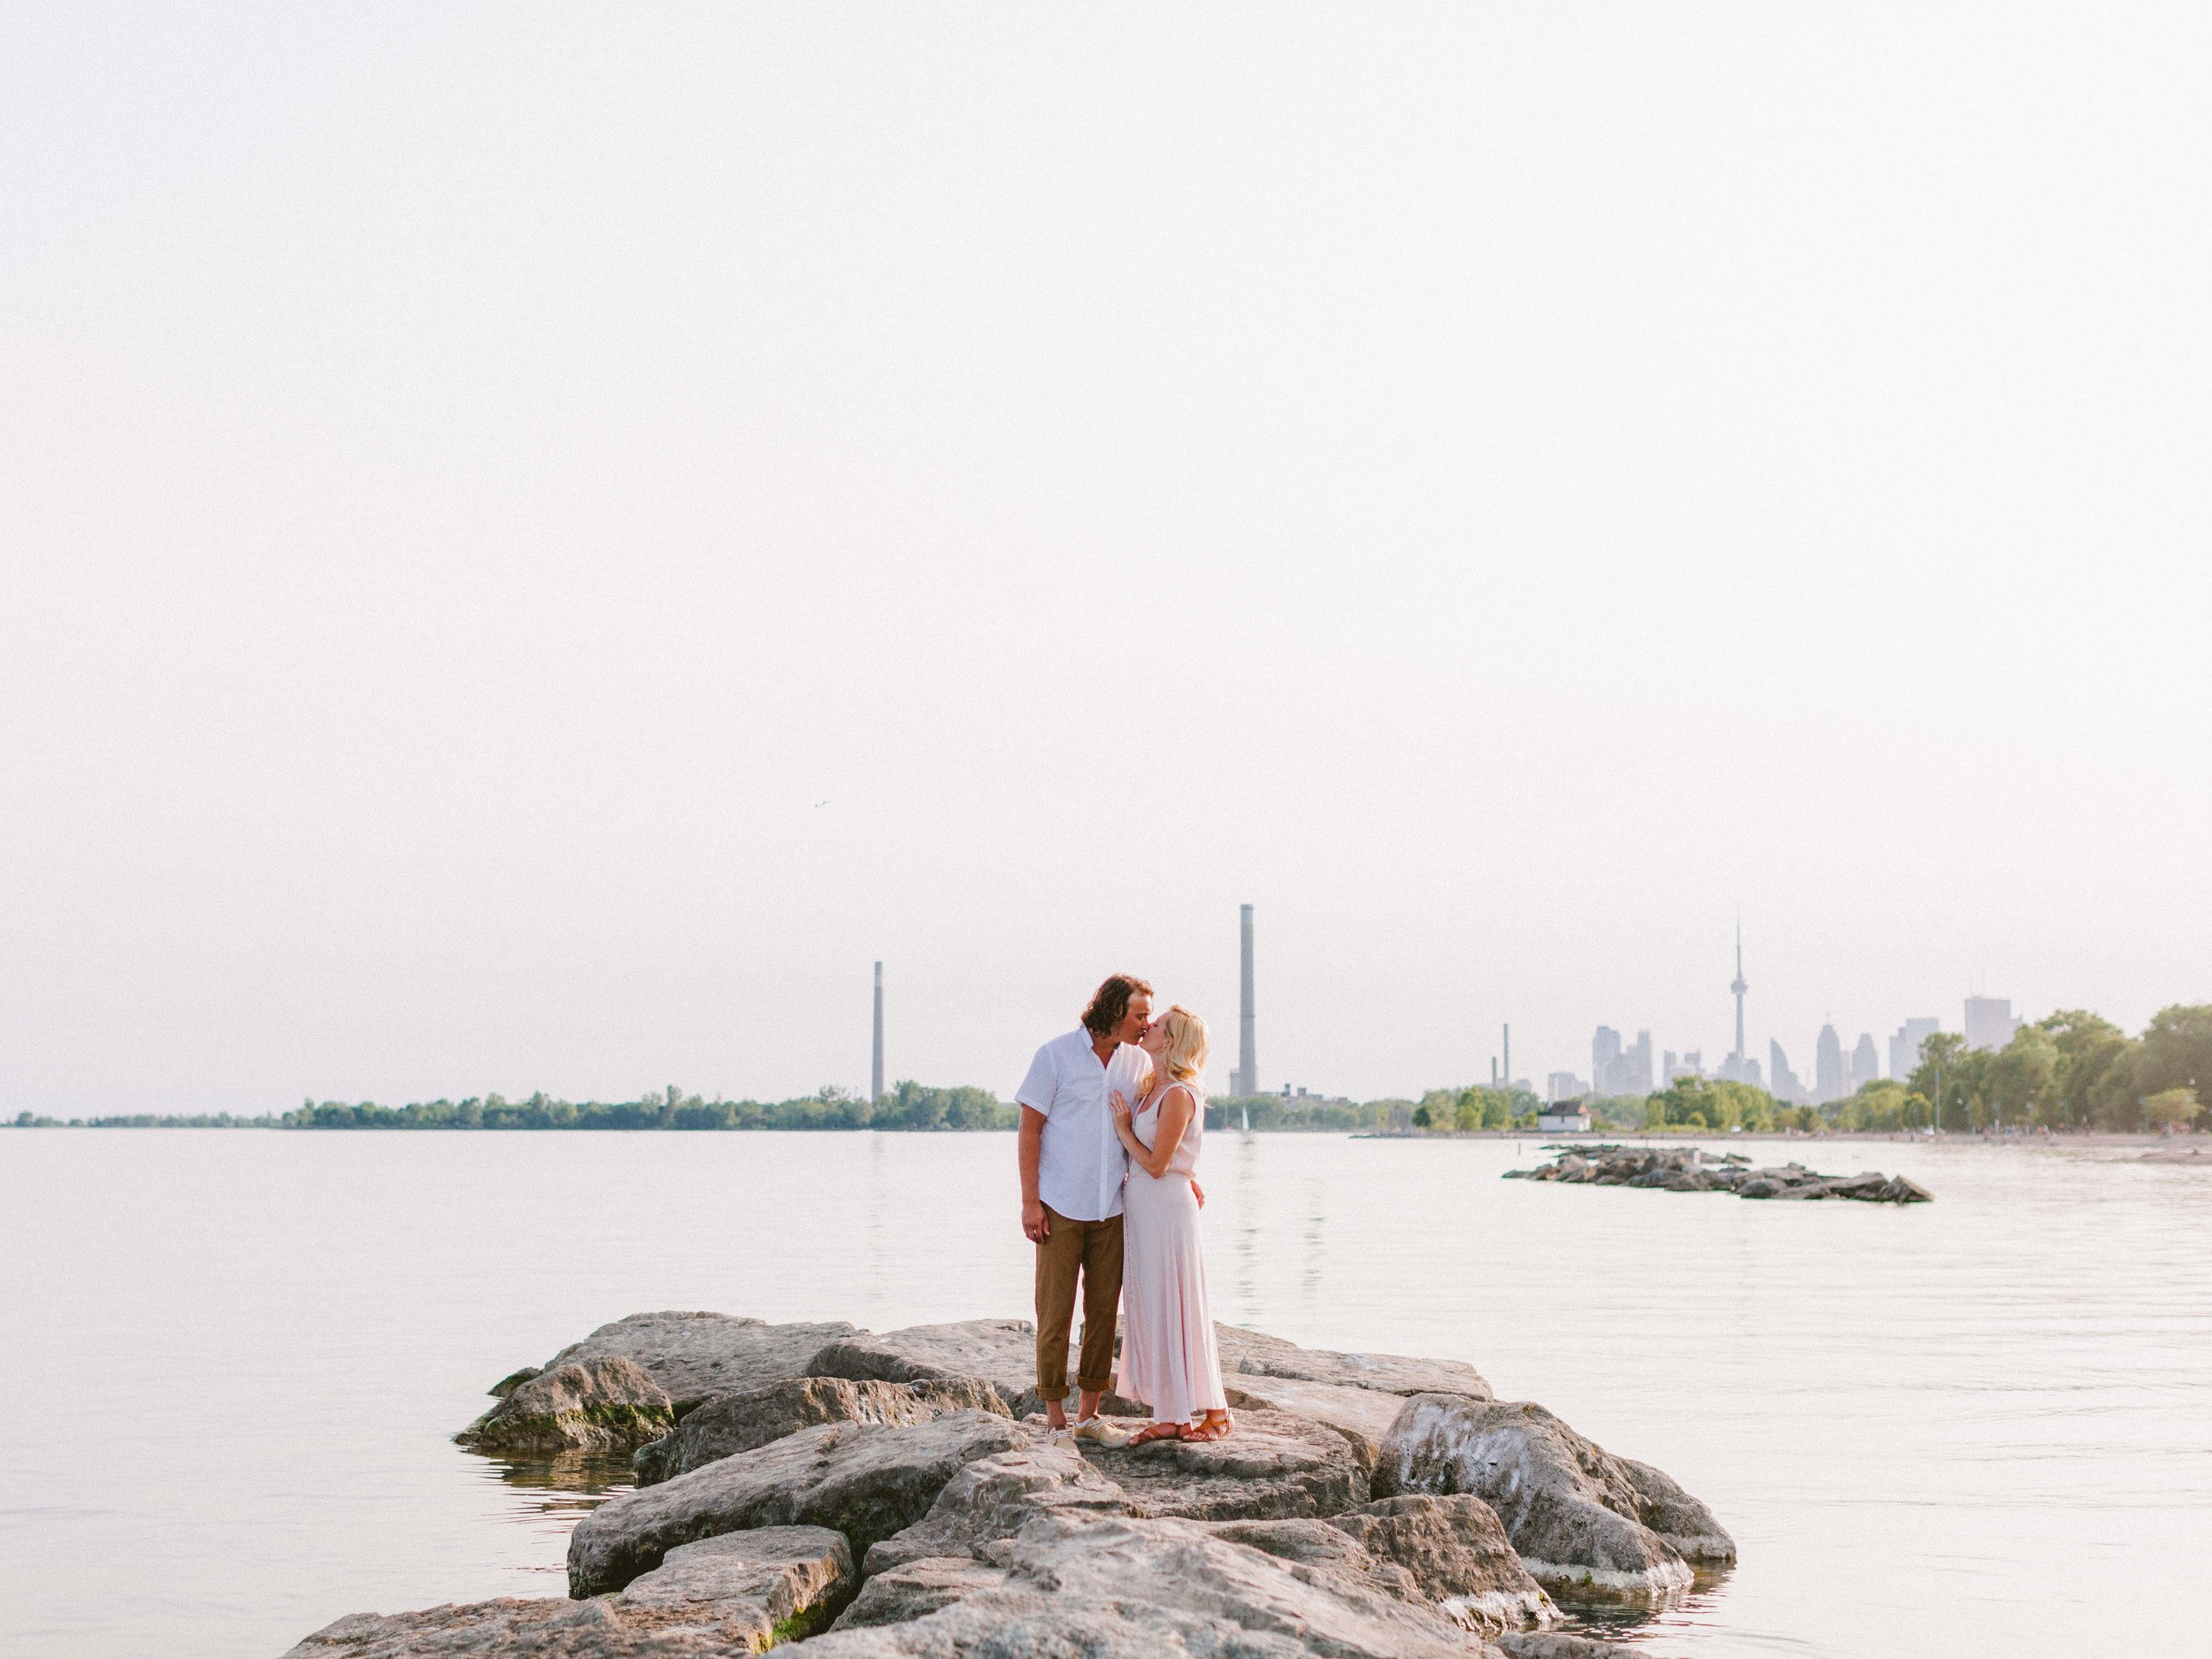 Woodbine_Beach_Engagement_Shoot (23 of 45).JPG